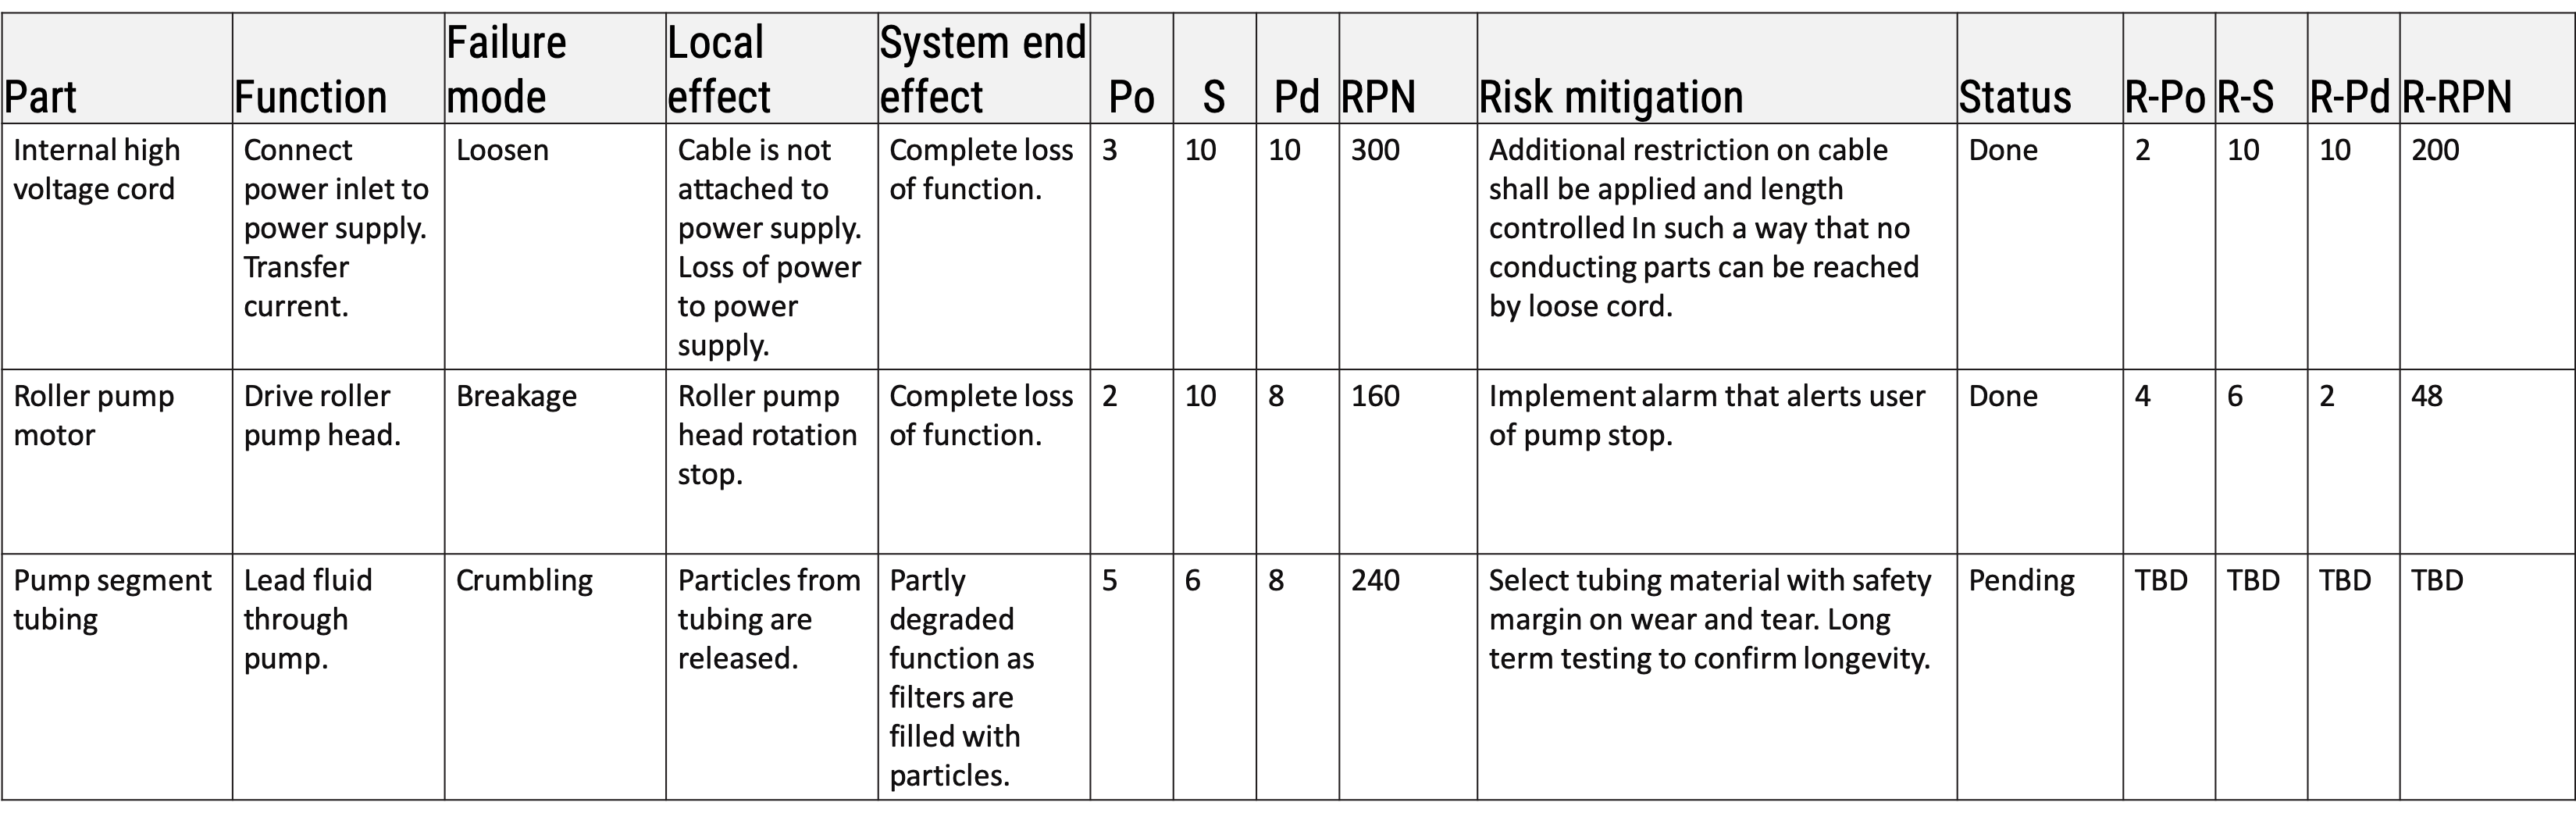 FMEA vs ISO 14971 - Design table